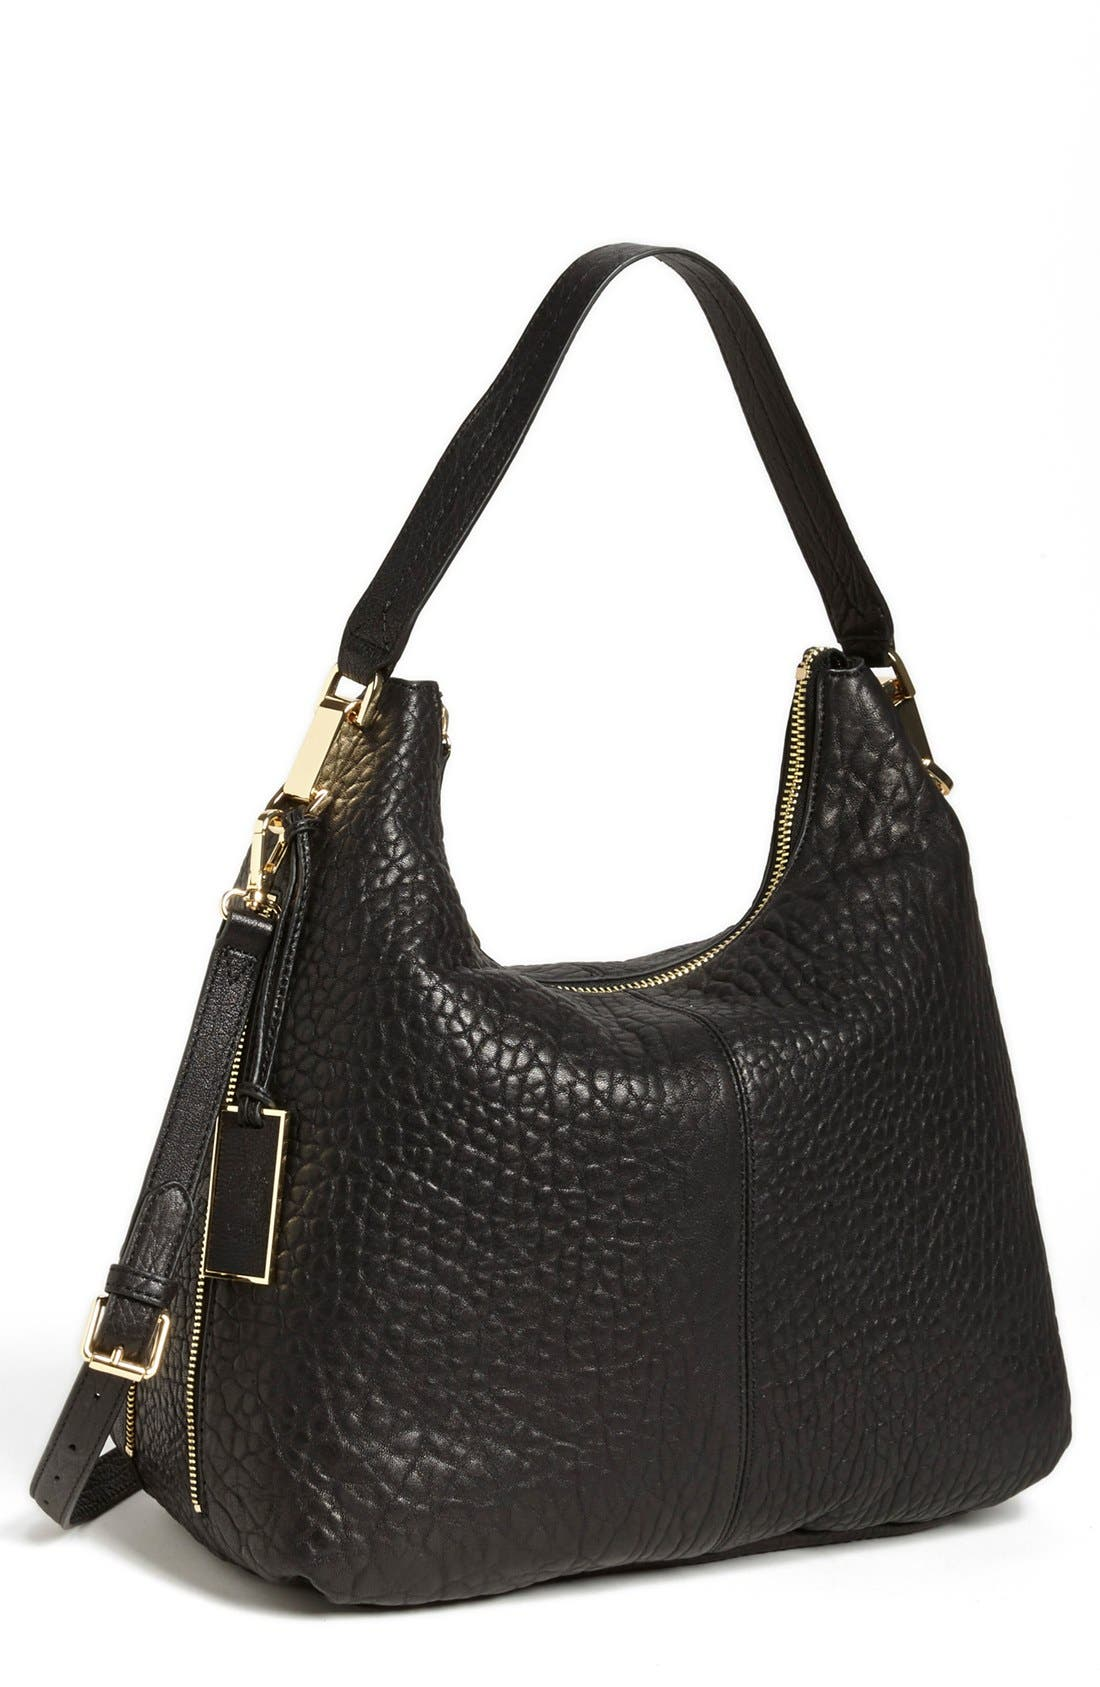 Alternate Image 1 Selected - Vince Camuto 'Riley' Hobo